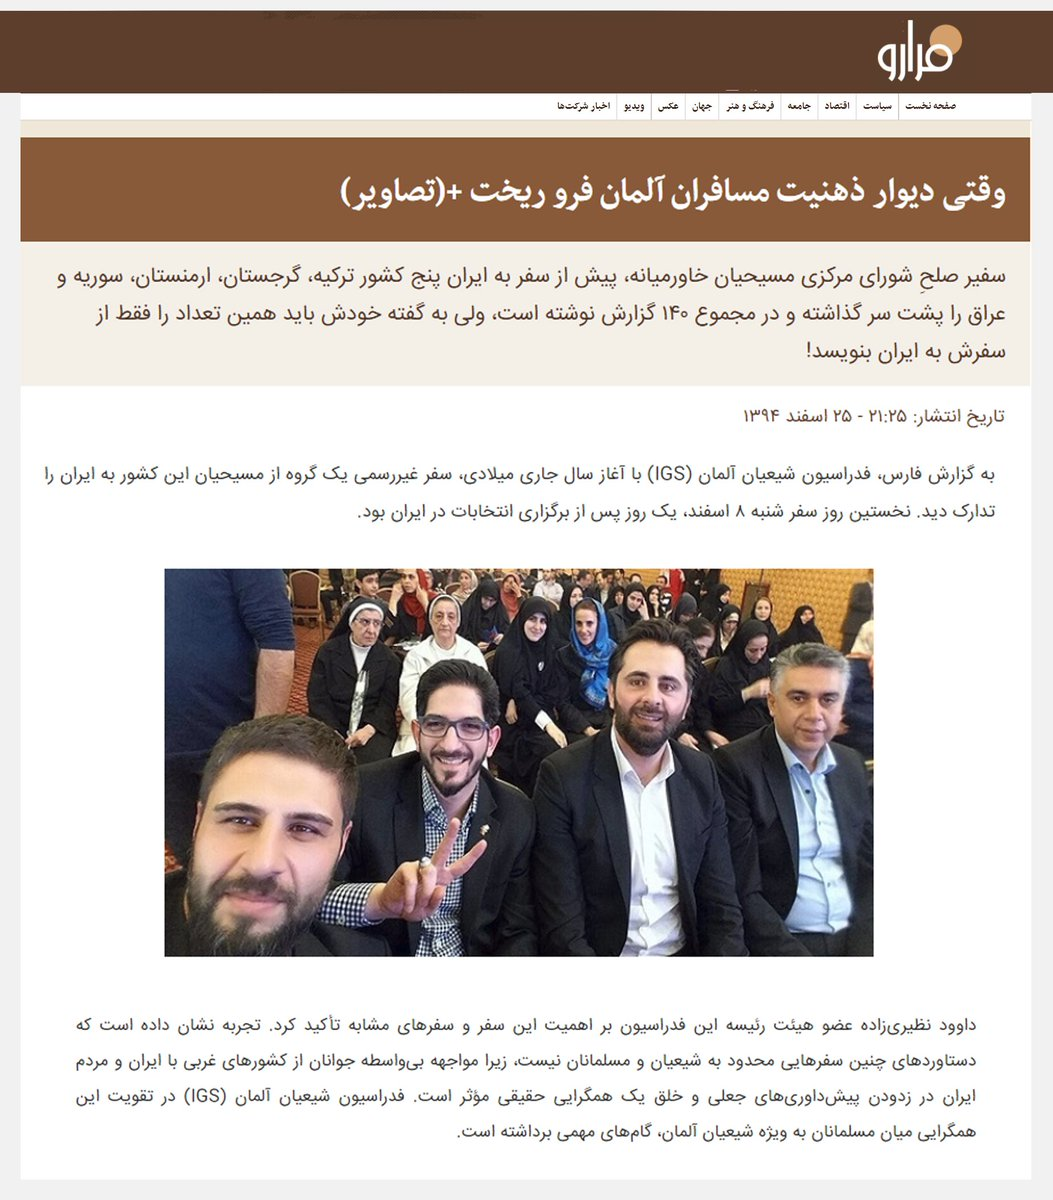 Nazirizadeh also has repeatedly taken German religious figures to Iran. In Iran, he connects his German guests to the Islamist international Al Mustafa University in Qom that is responsible for training Shiite missionaries for the regime worldwide. #Iran_Lobby